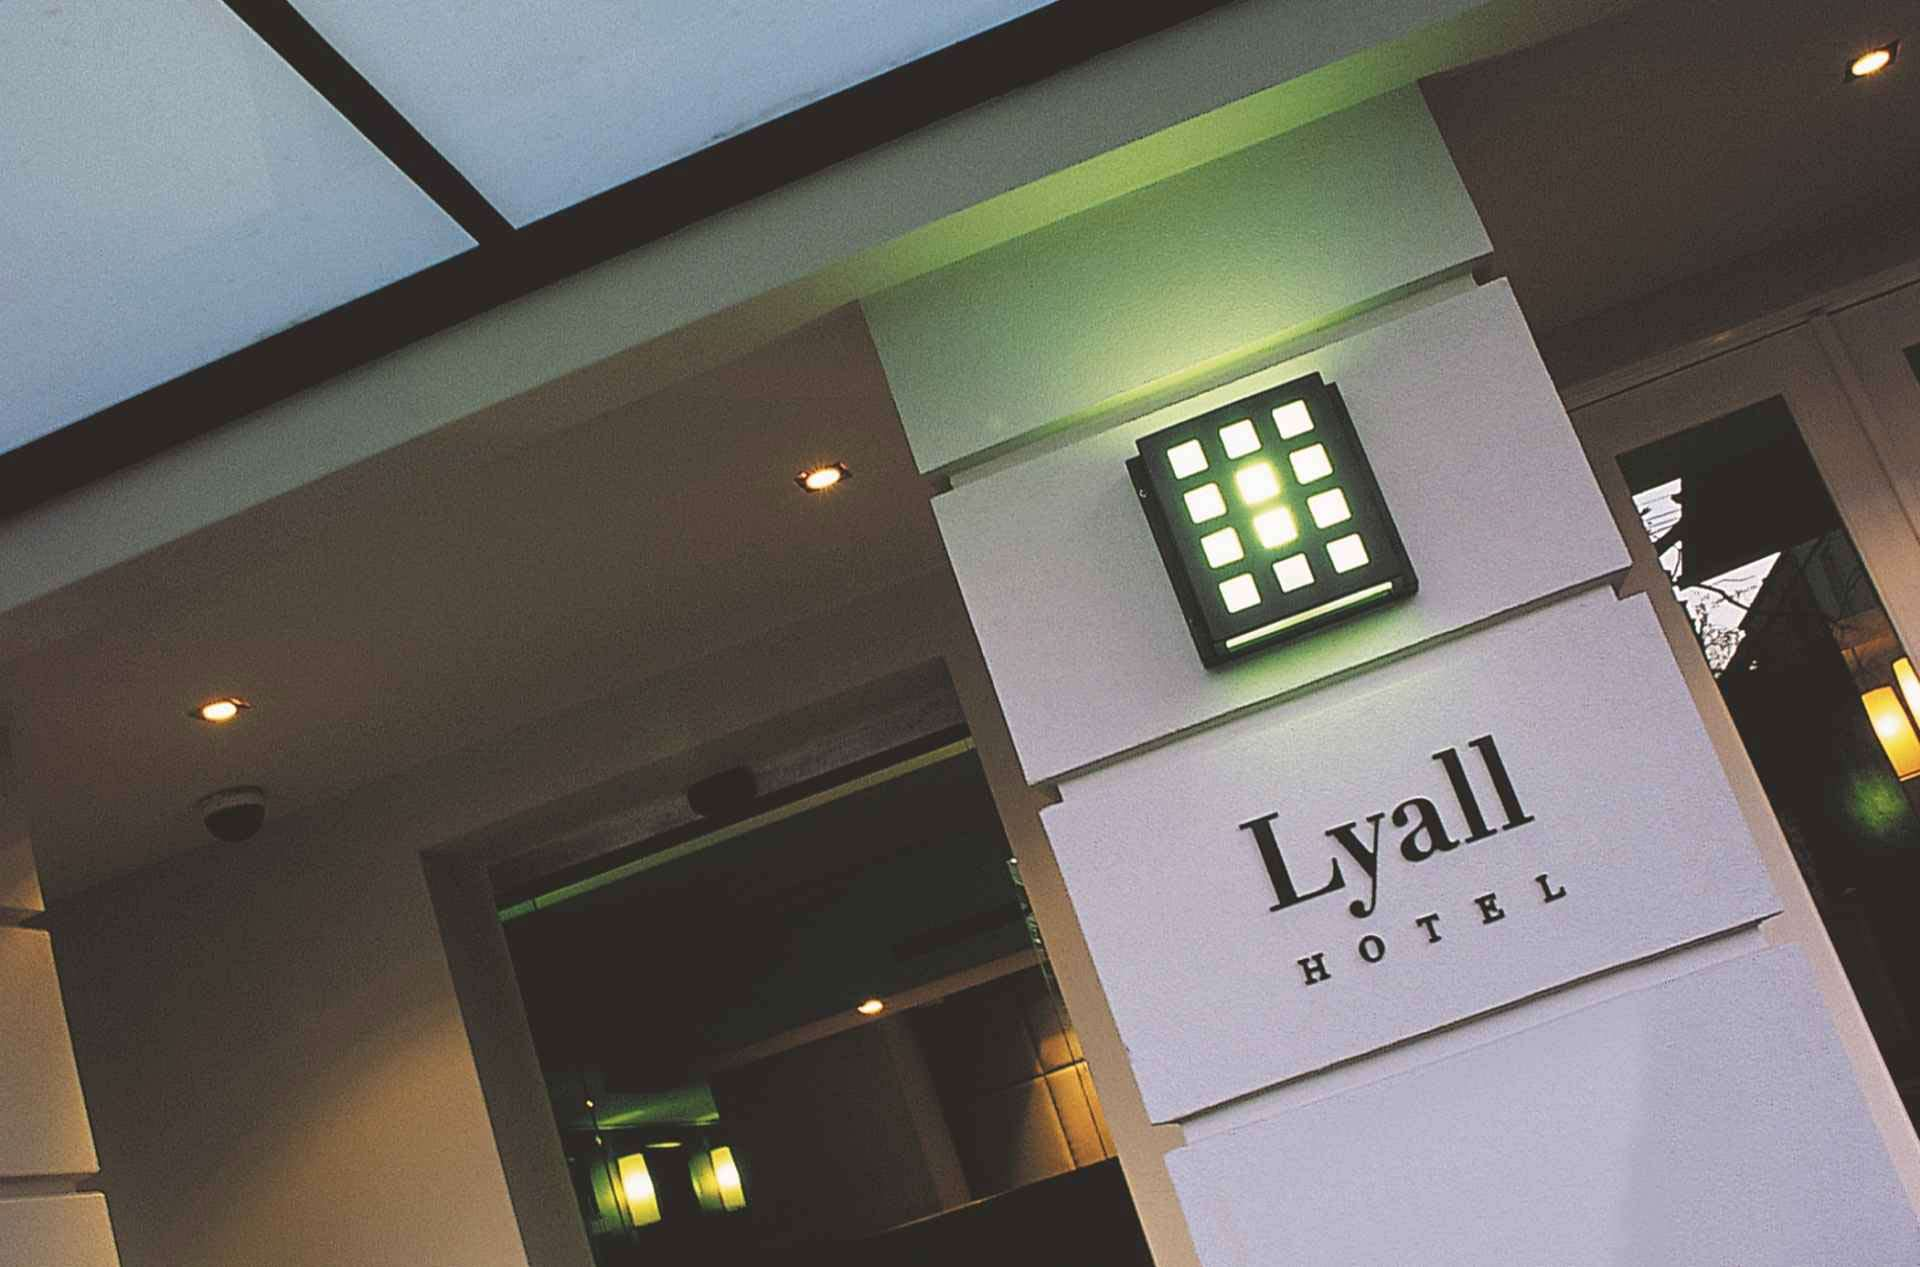 The Lyall Hotel and Spa TDS